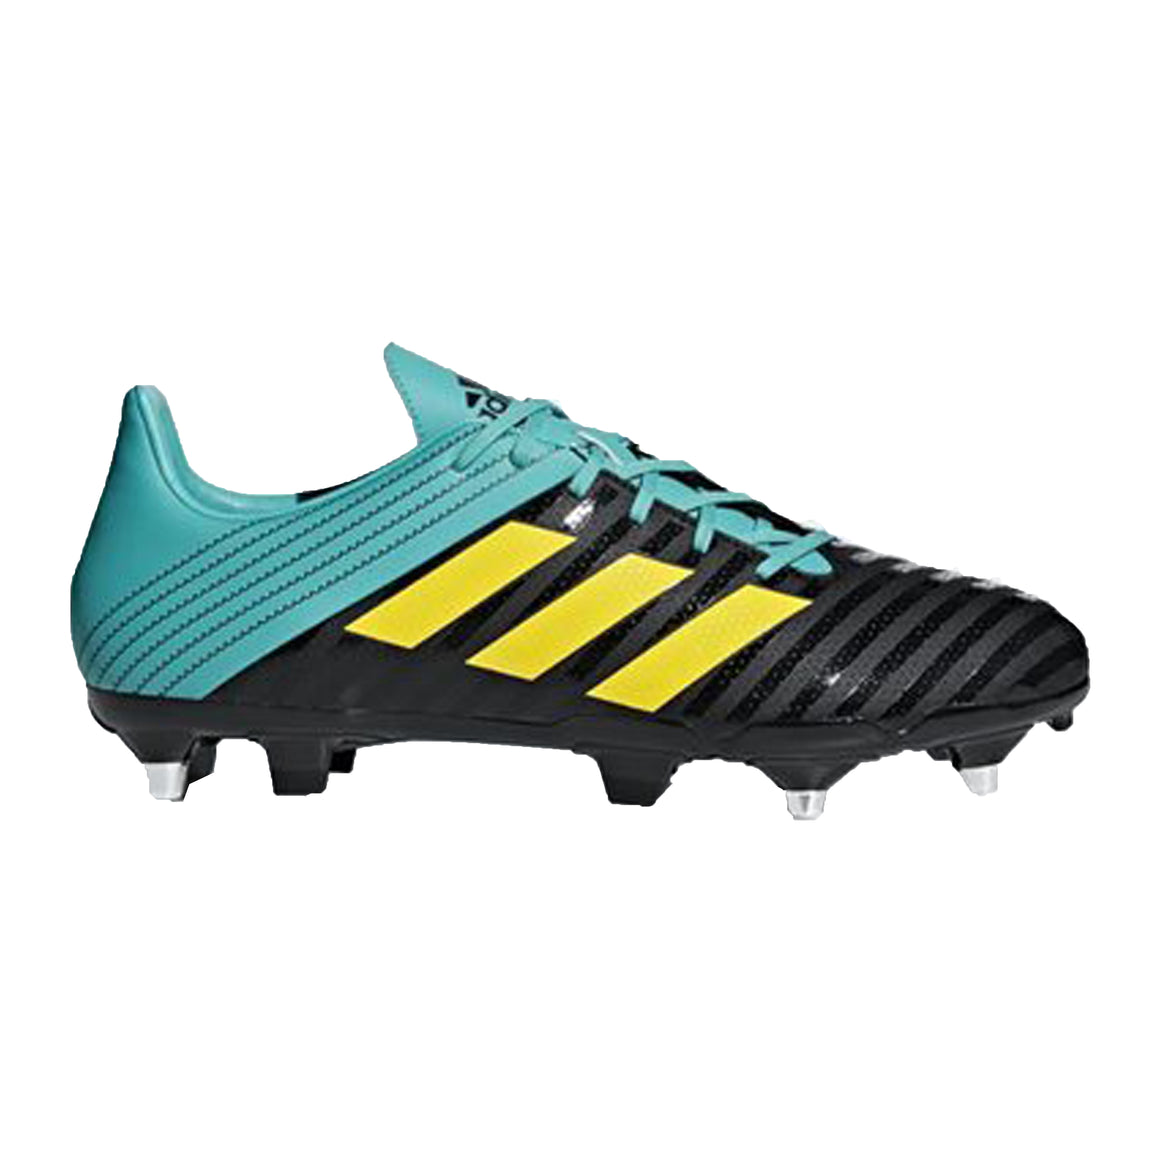 Malice SG Rugby Boots for Men in Black